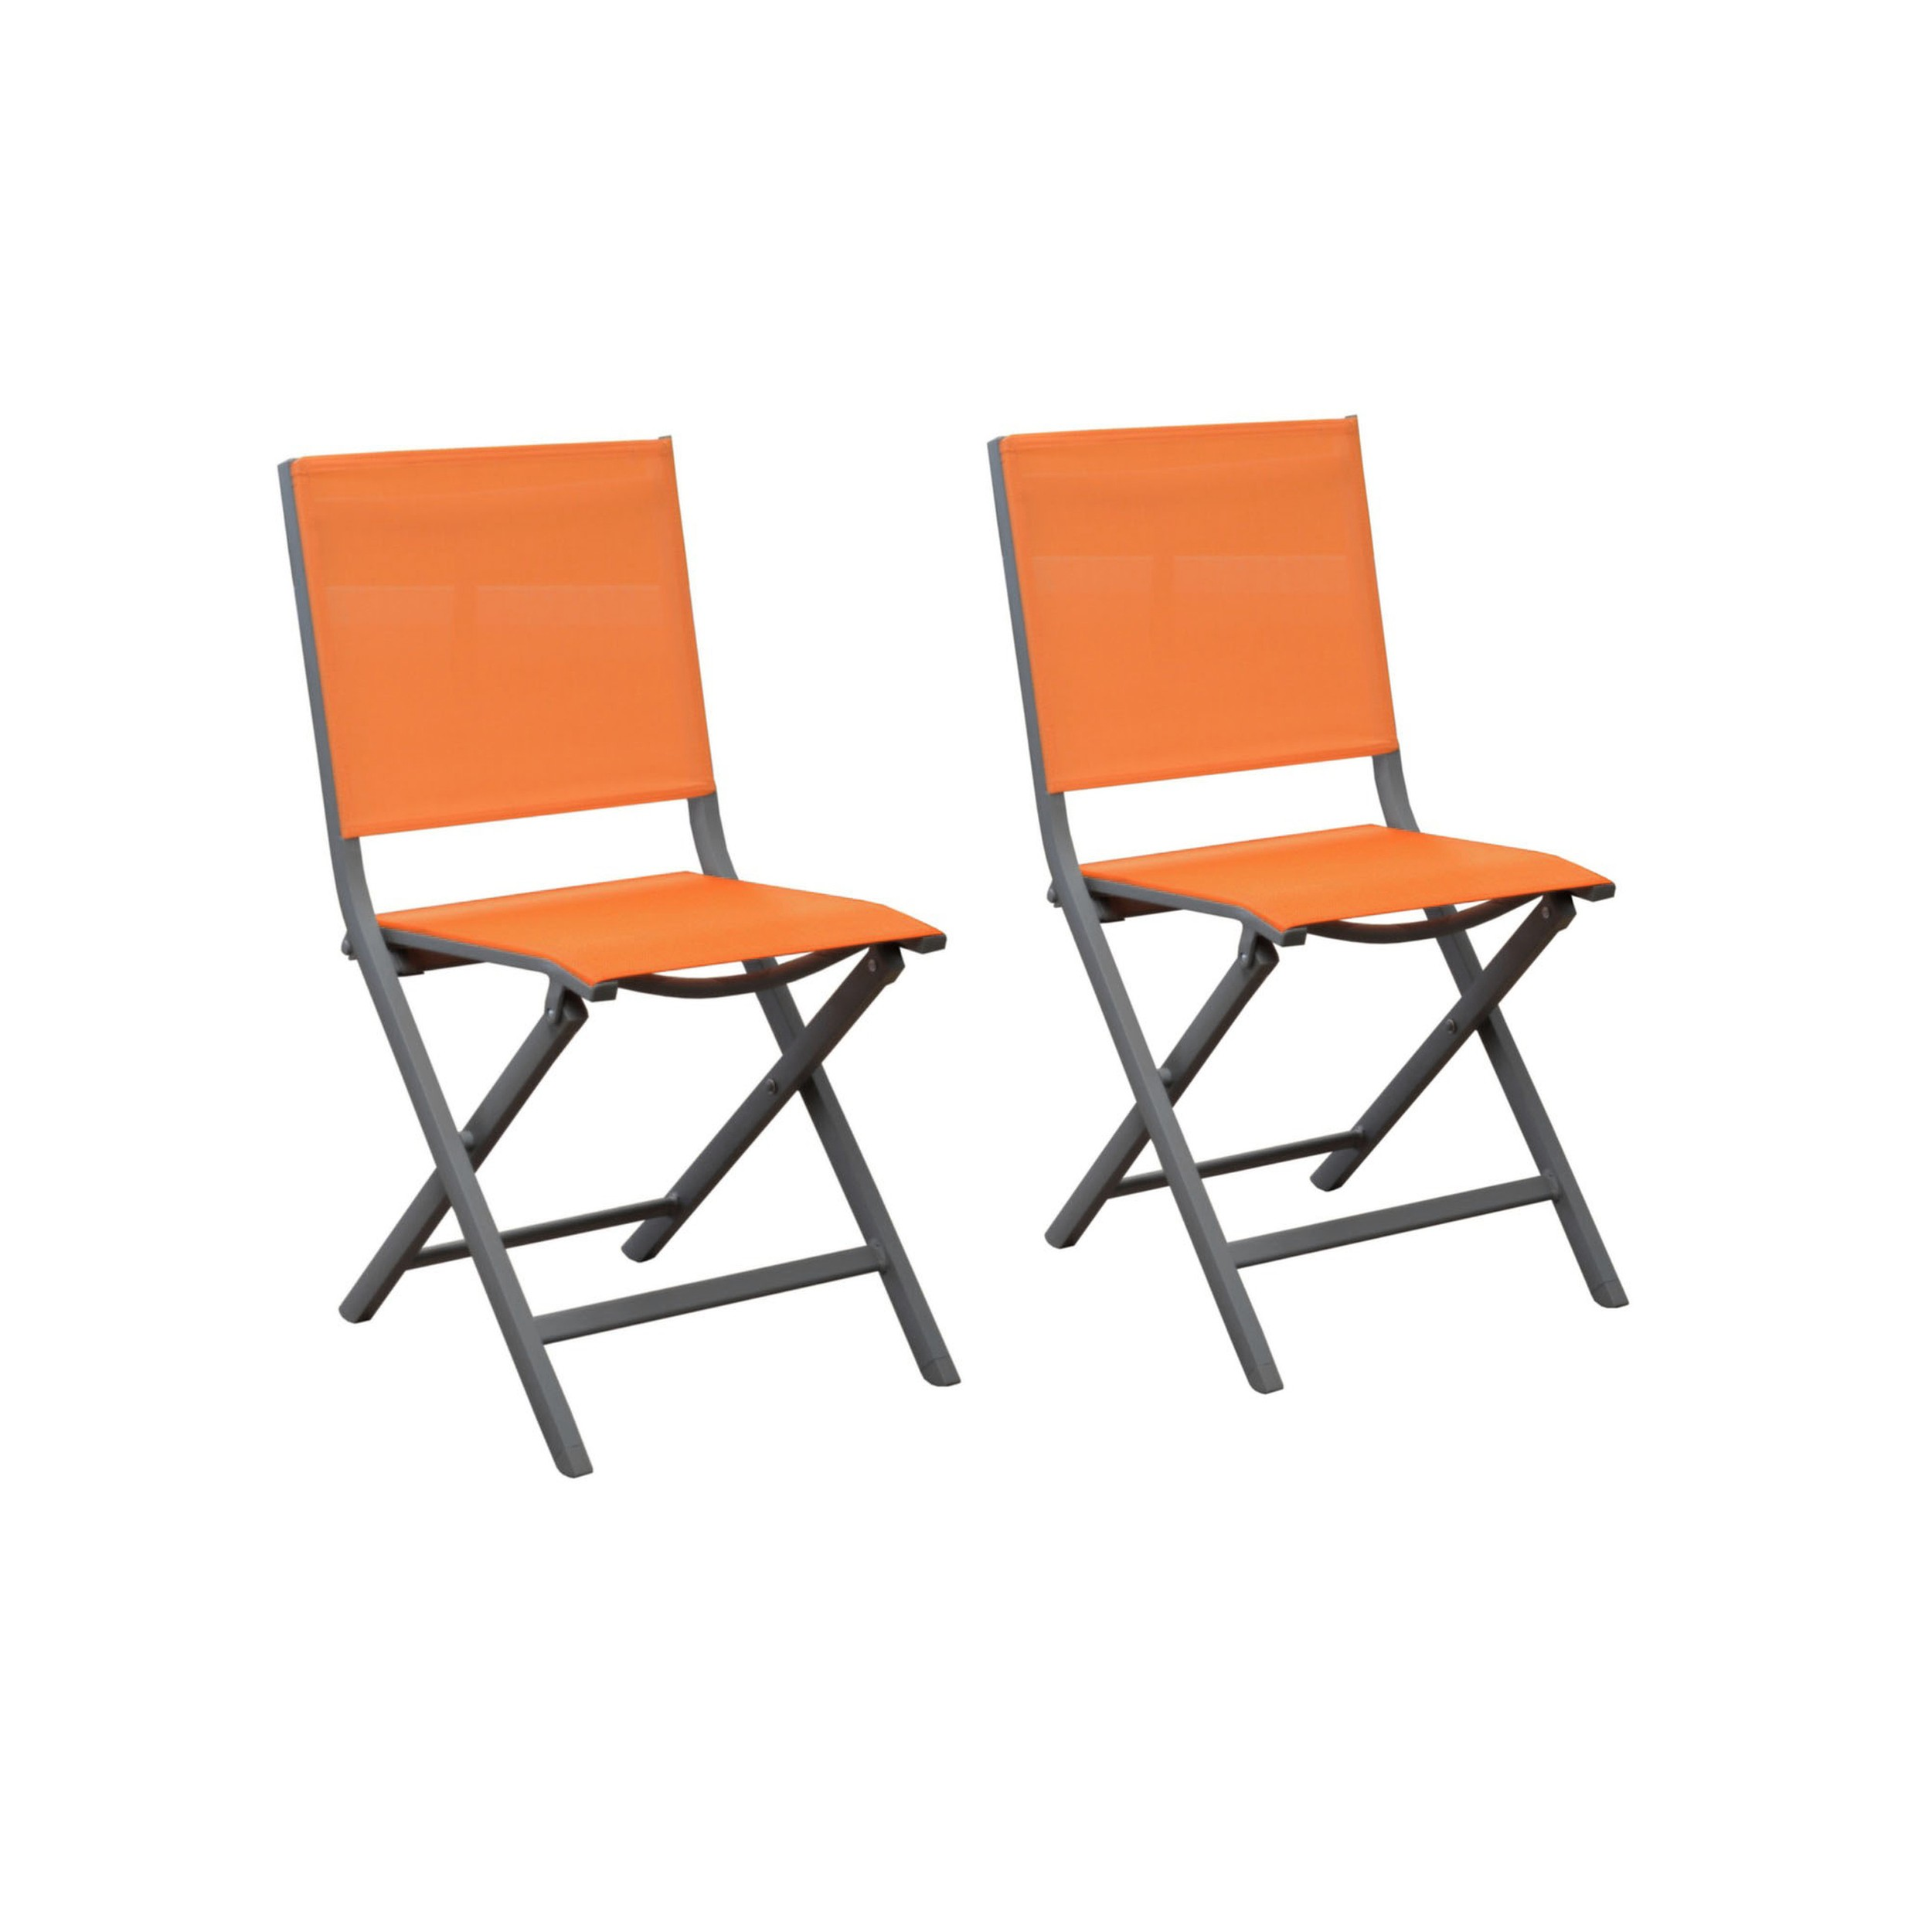 Lot 8 Chaises De Jardin Chaise De Jardin Orange Chaise De Jardin En M Tal Orange